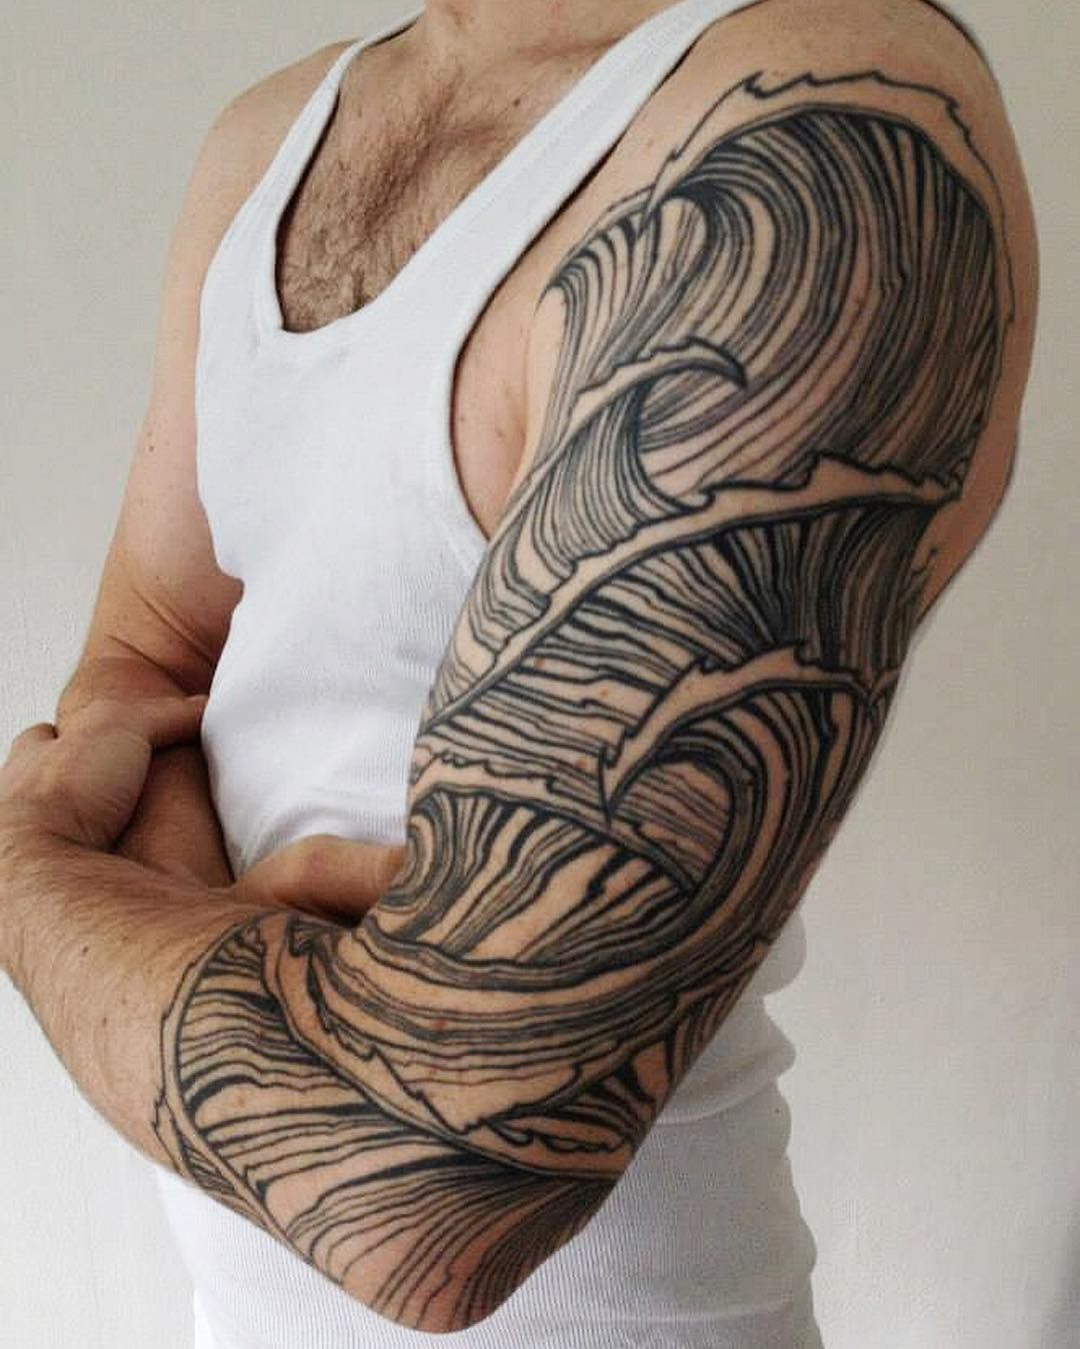 Depression Is Hell Tattoo Submit Your Tattoo: Surfing Tattoo By Jessimanchester. Sleeve Tattoos For Men